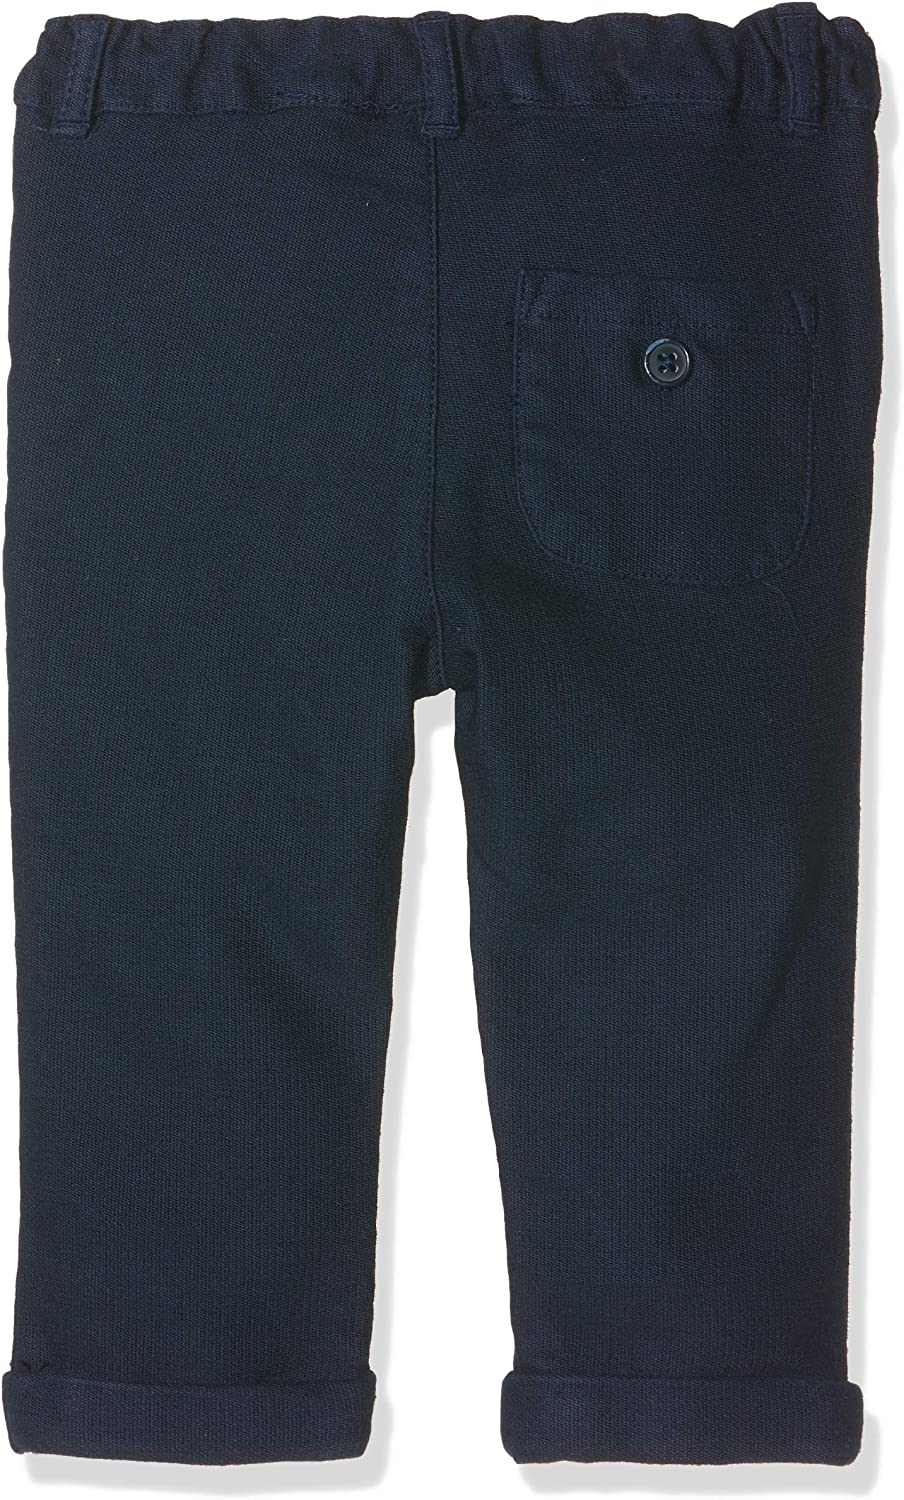 Chicco Baby-Jungen Completo Polo Con Pantaloni Lunghi Bekleidungsset